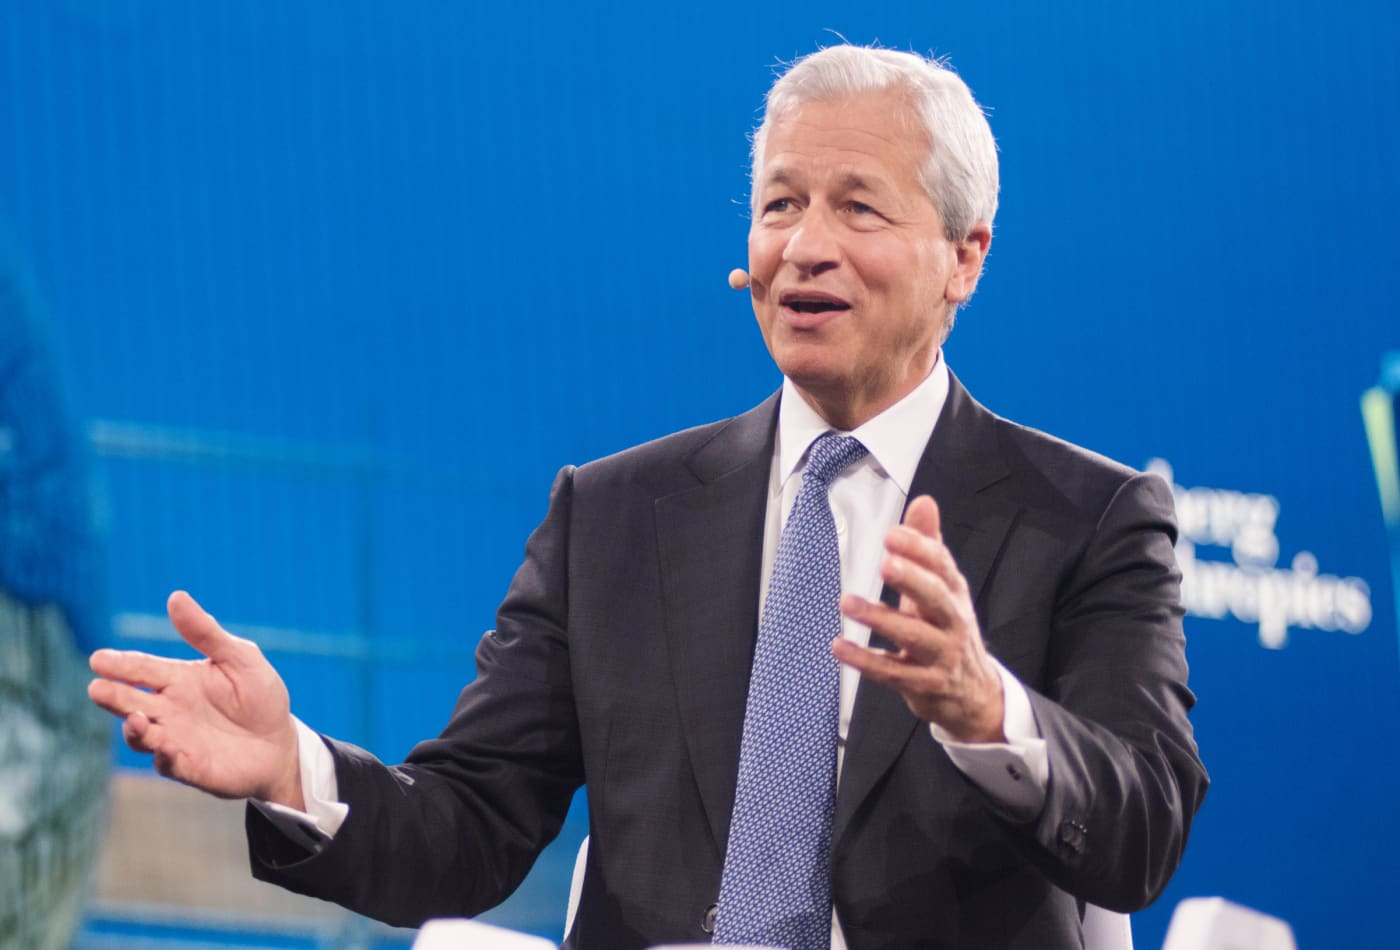 JPMorgan CEO Jamie Dimon shares advice to grads: 'How you deal with failure may be most important'